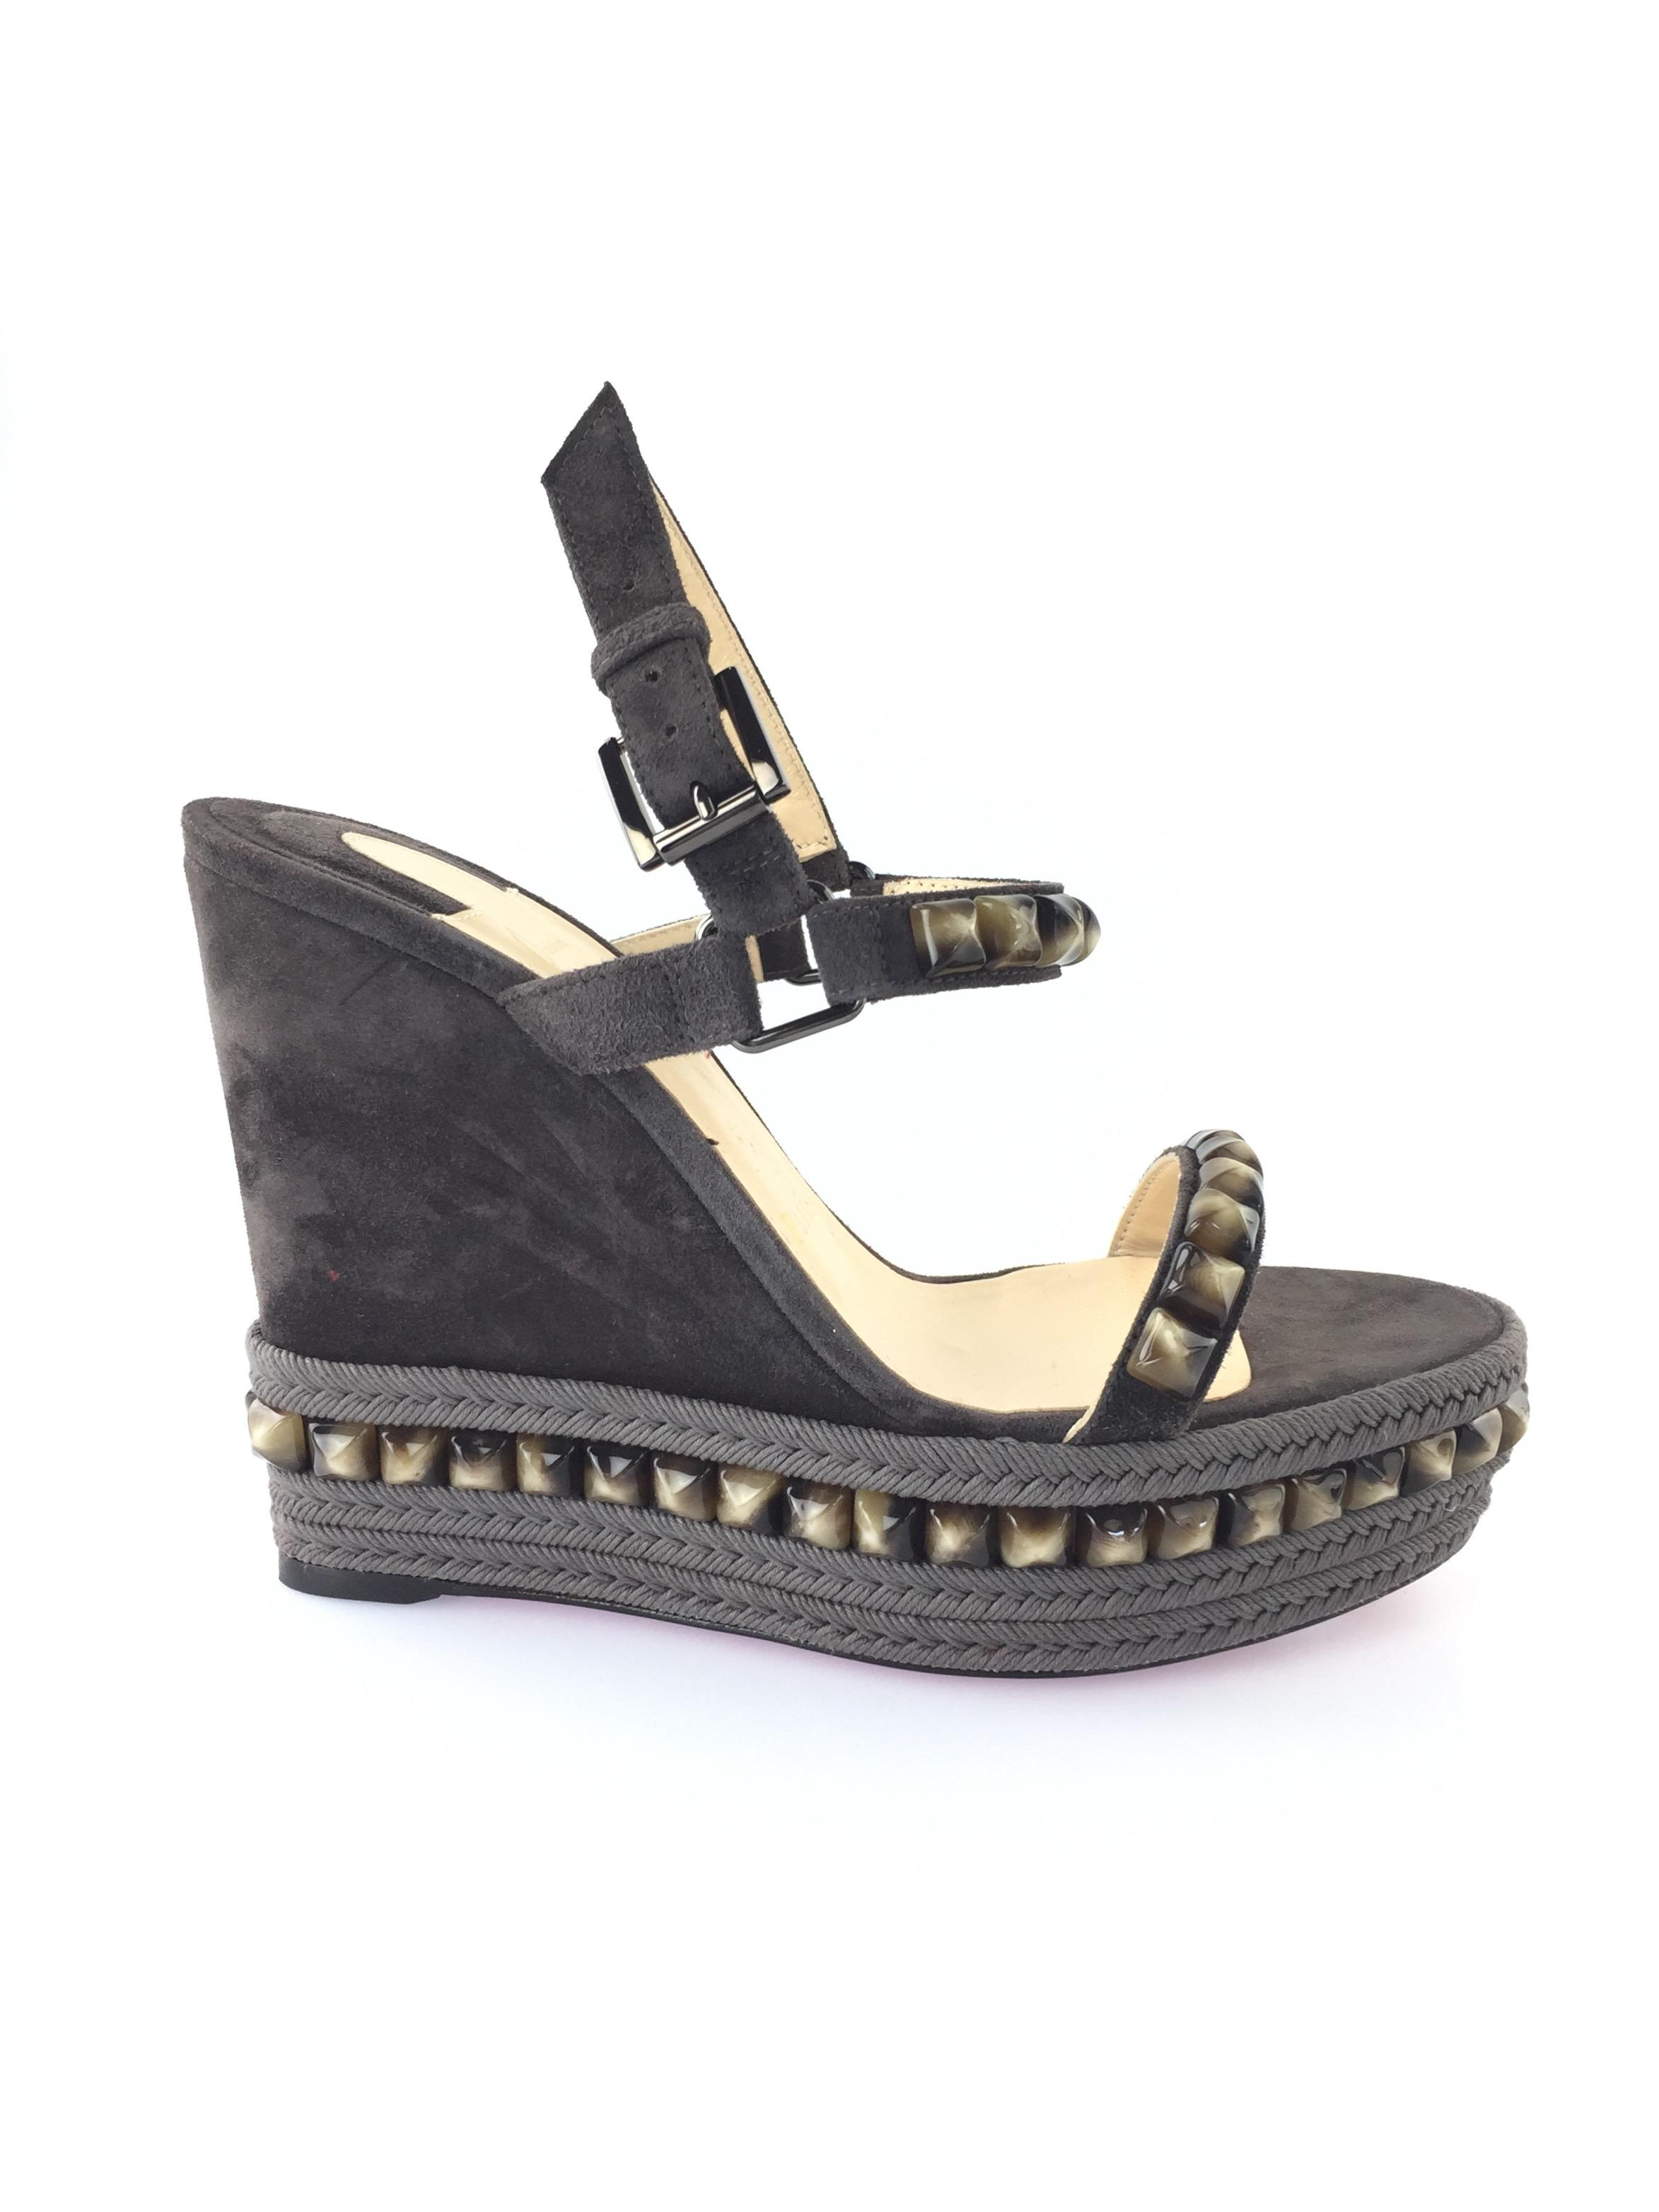 12fcd1f27c91 ... coupon christian louboutin cataclou espadrilles studded sandals testa  di moro wedges d635c 17ced